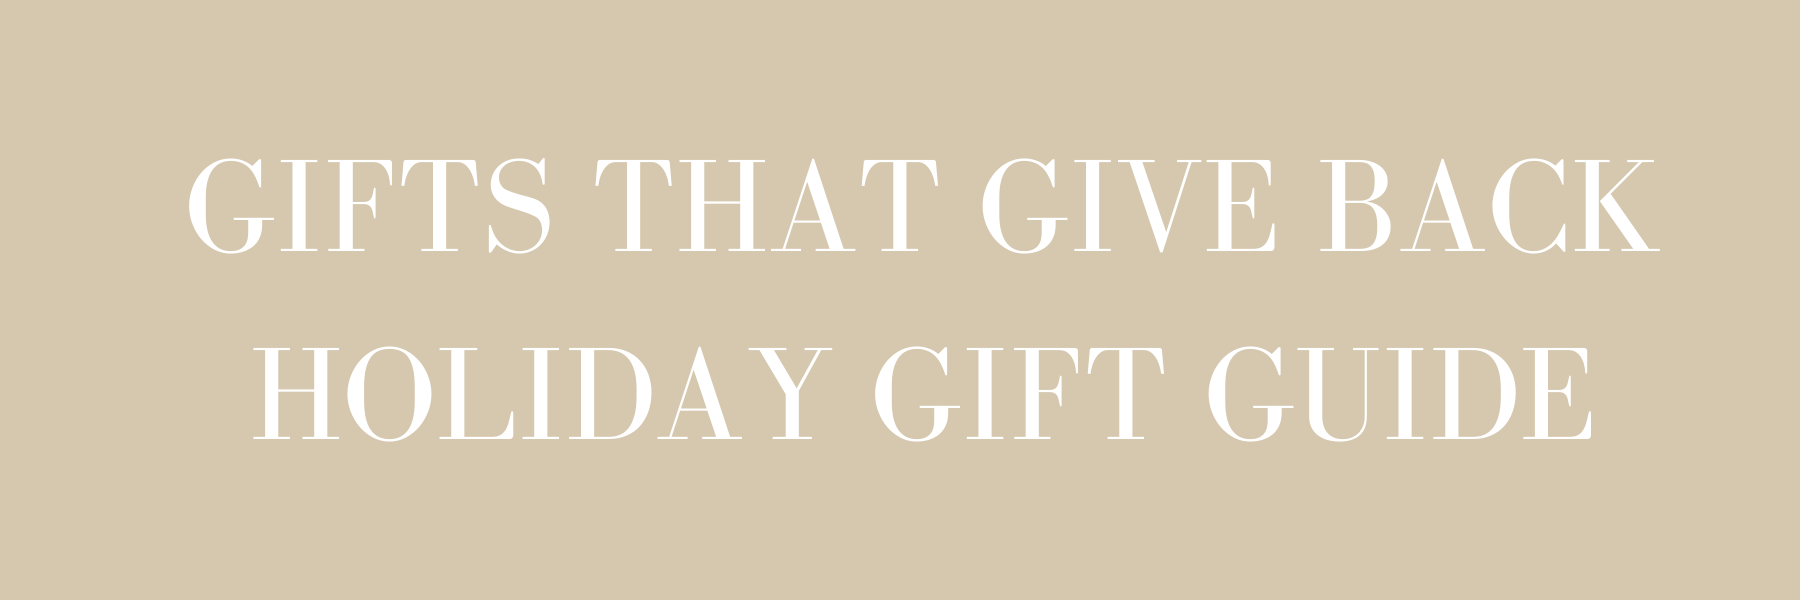 Benevolence LA - Giving Back Holiday Gift Guide